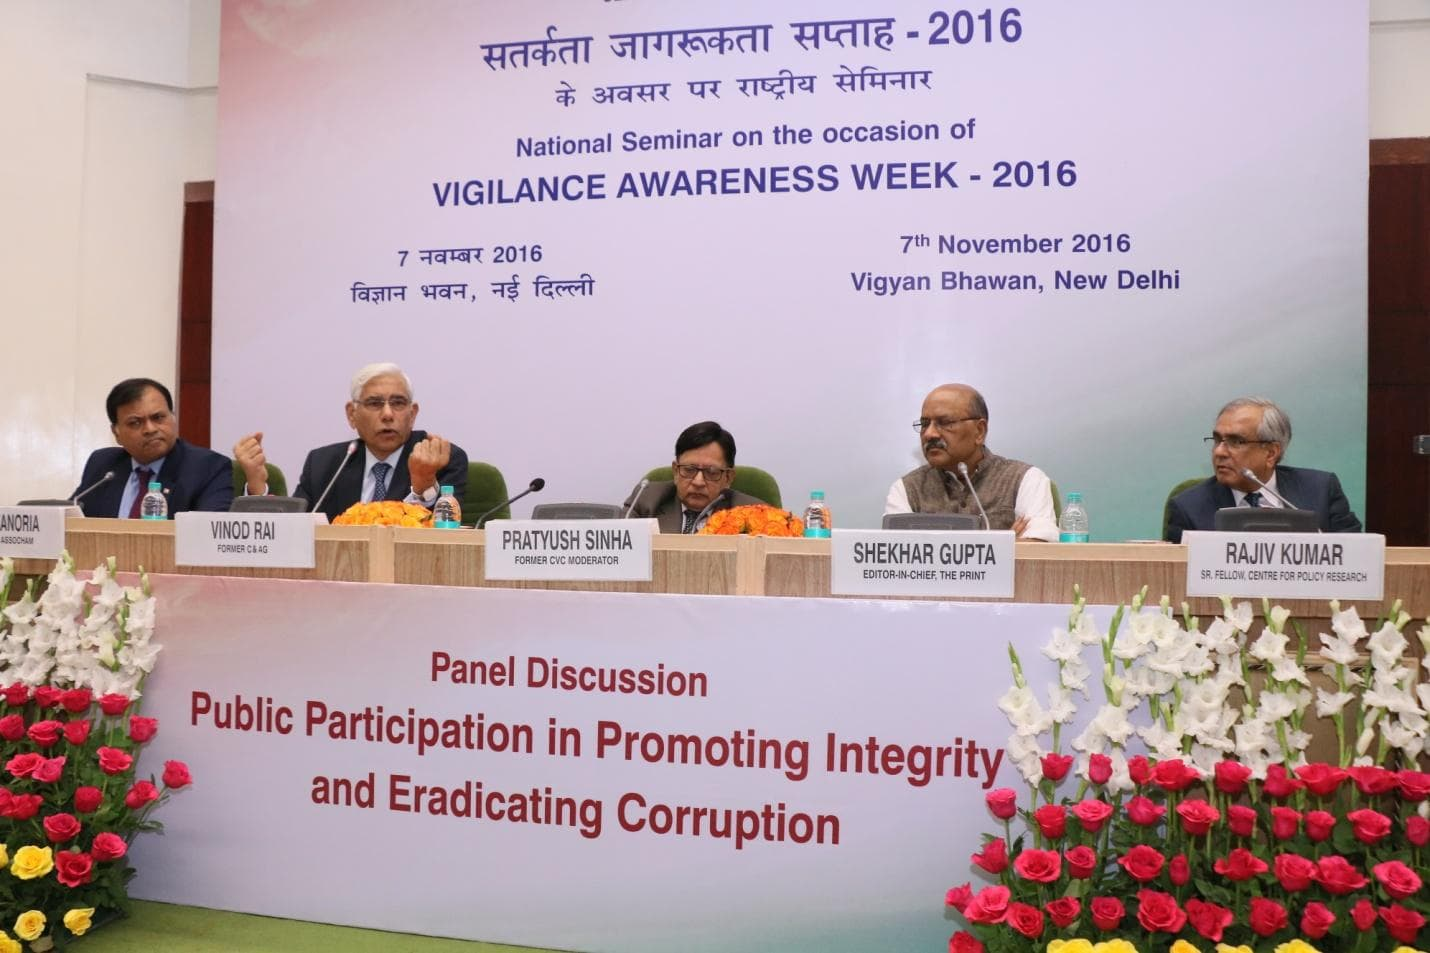 National Seminar VIGILANCE AWARENESS WEEK-2016 photo 15